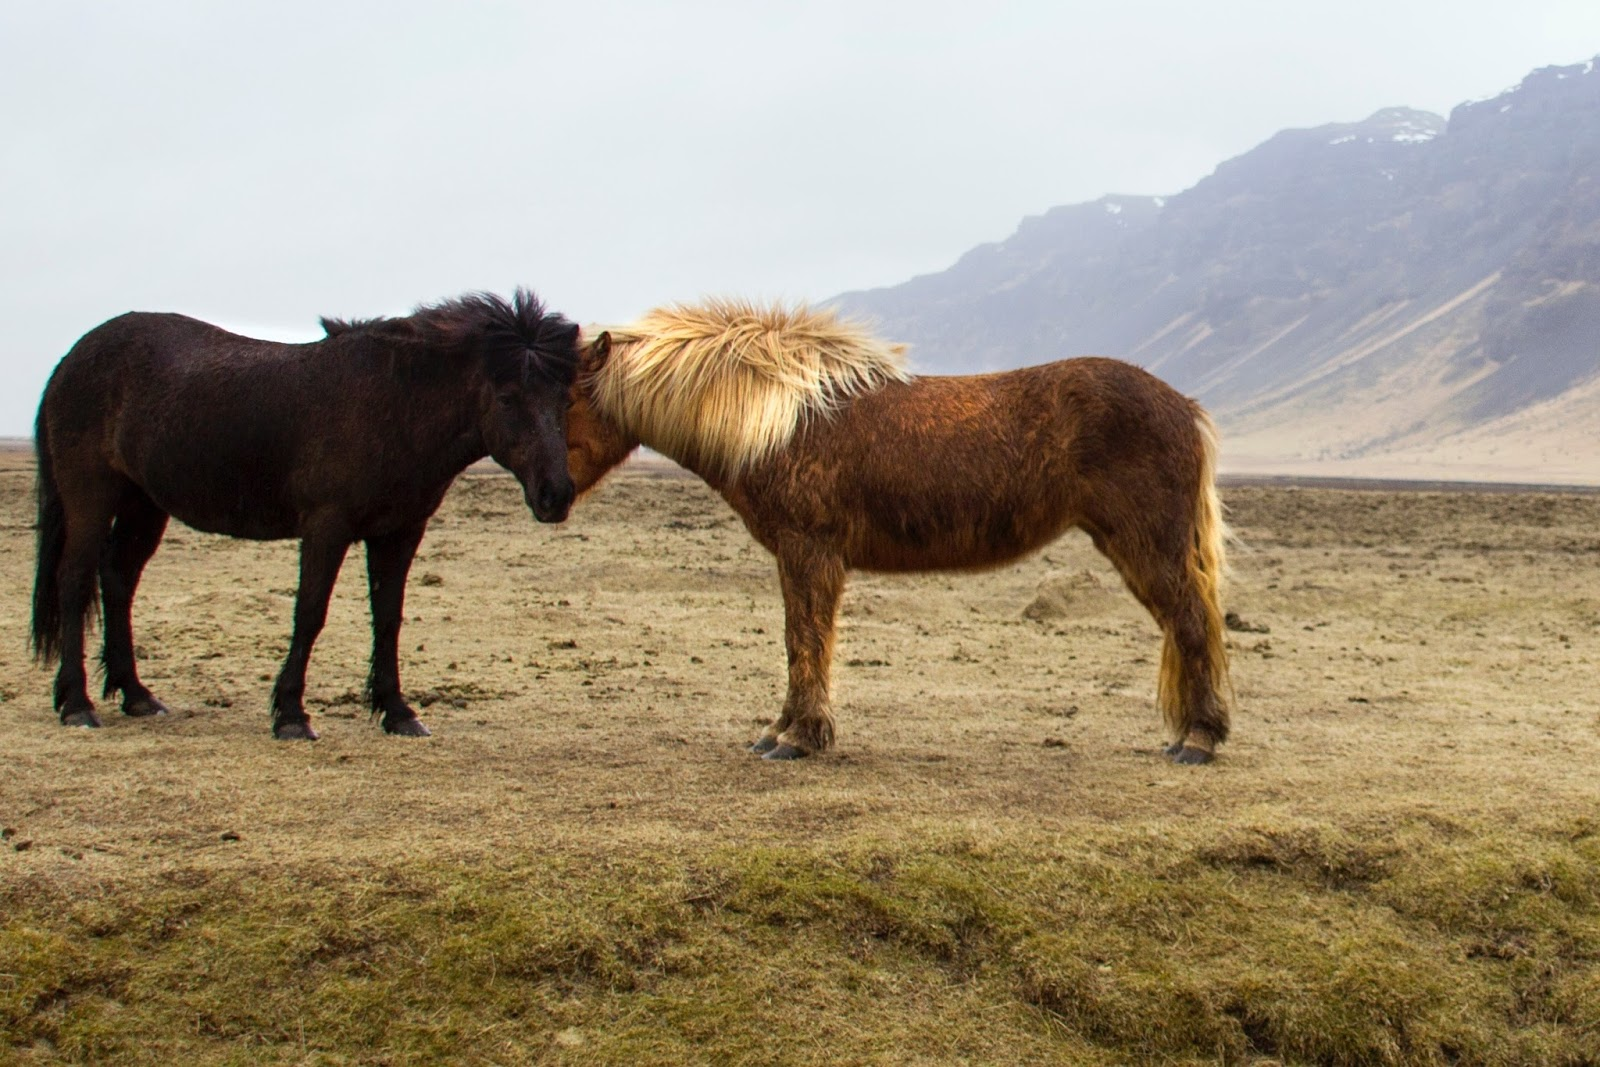 ambient guitar music by whispersinspace: Whisper 10 - Horses